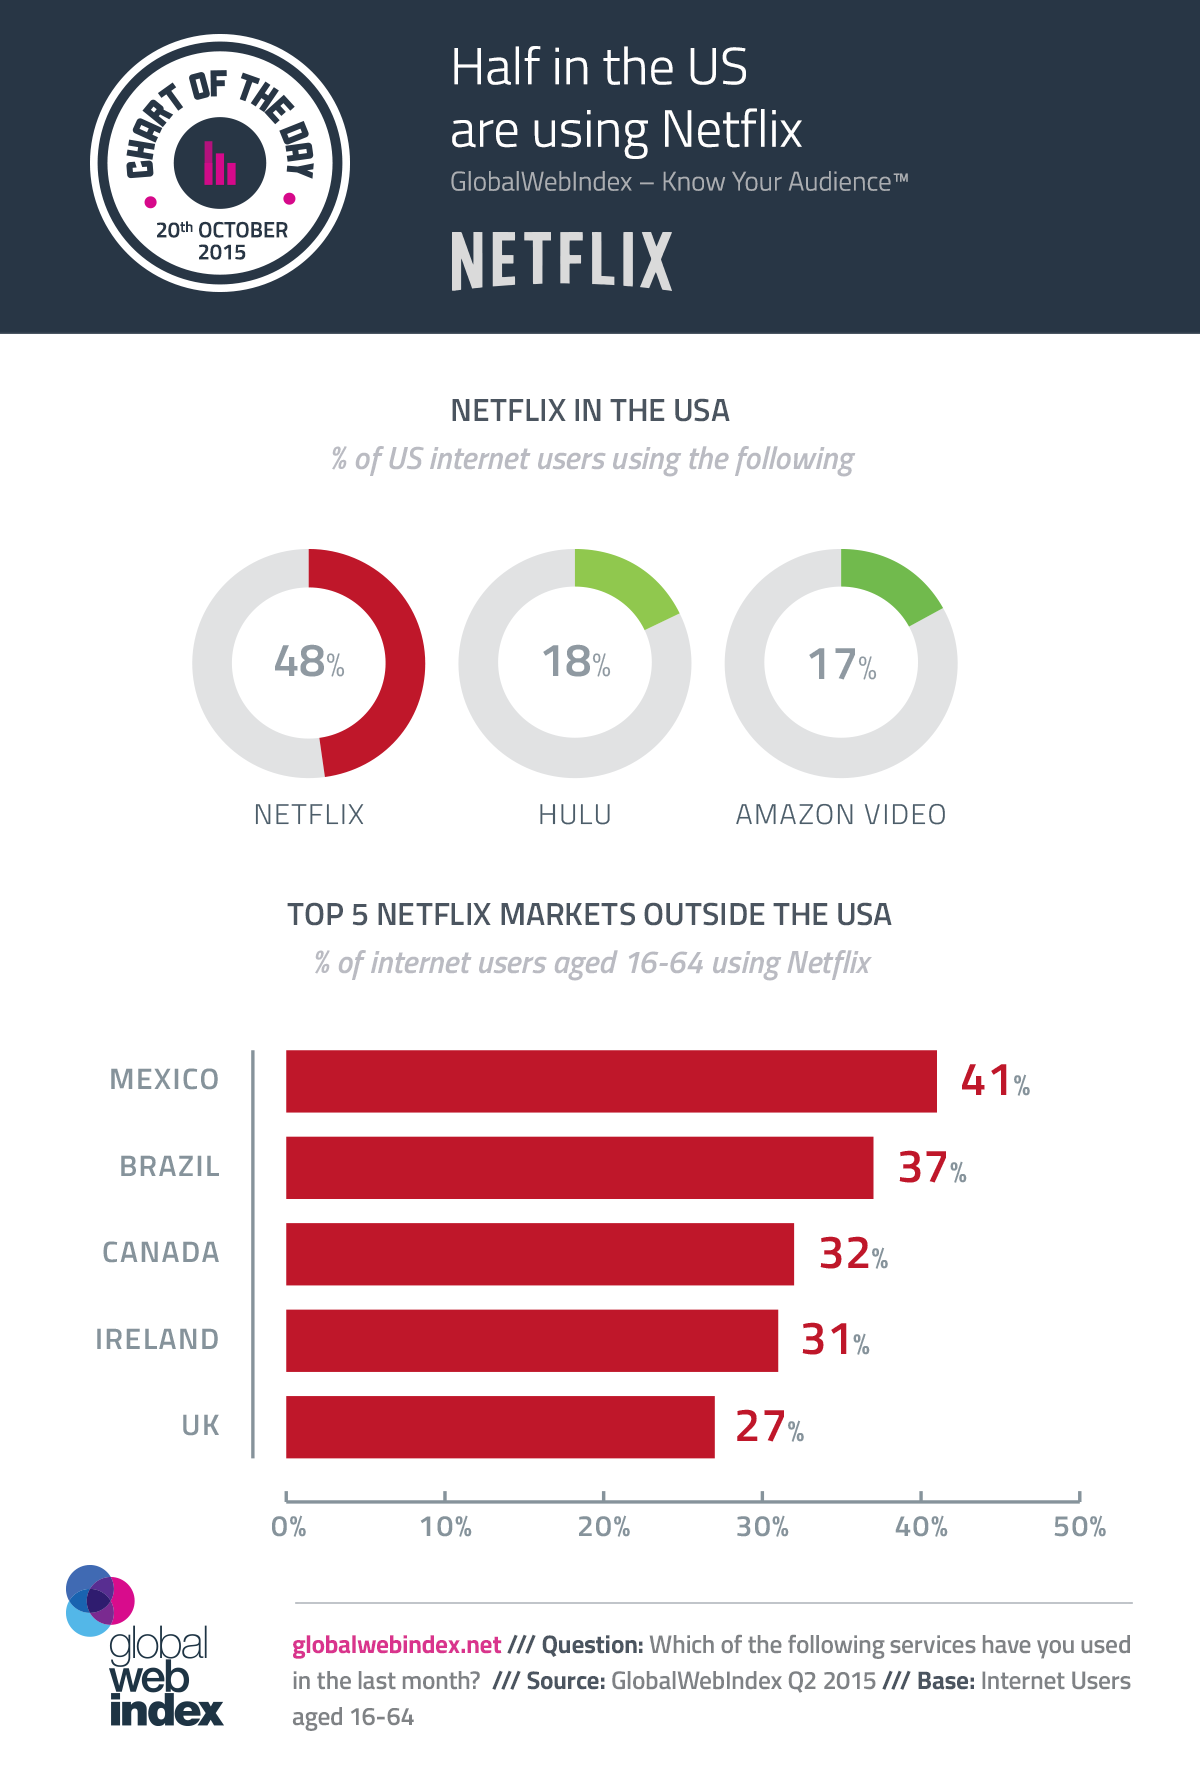 20th-Oct-2015-Half-in-the-US-are-using-Netflix